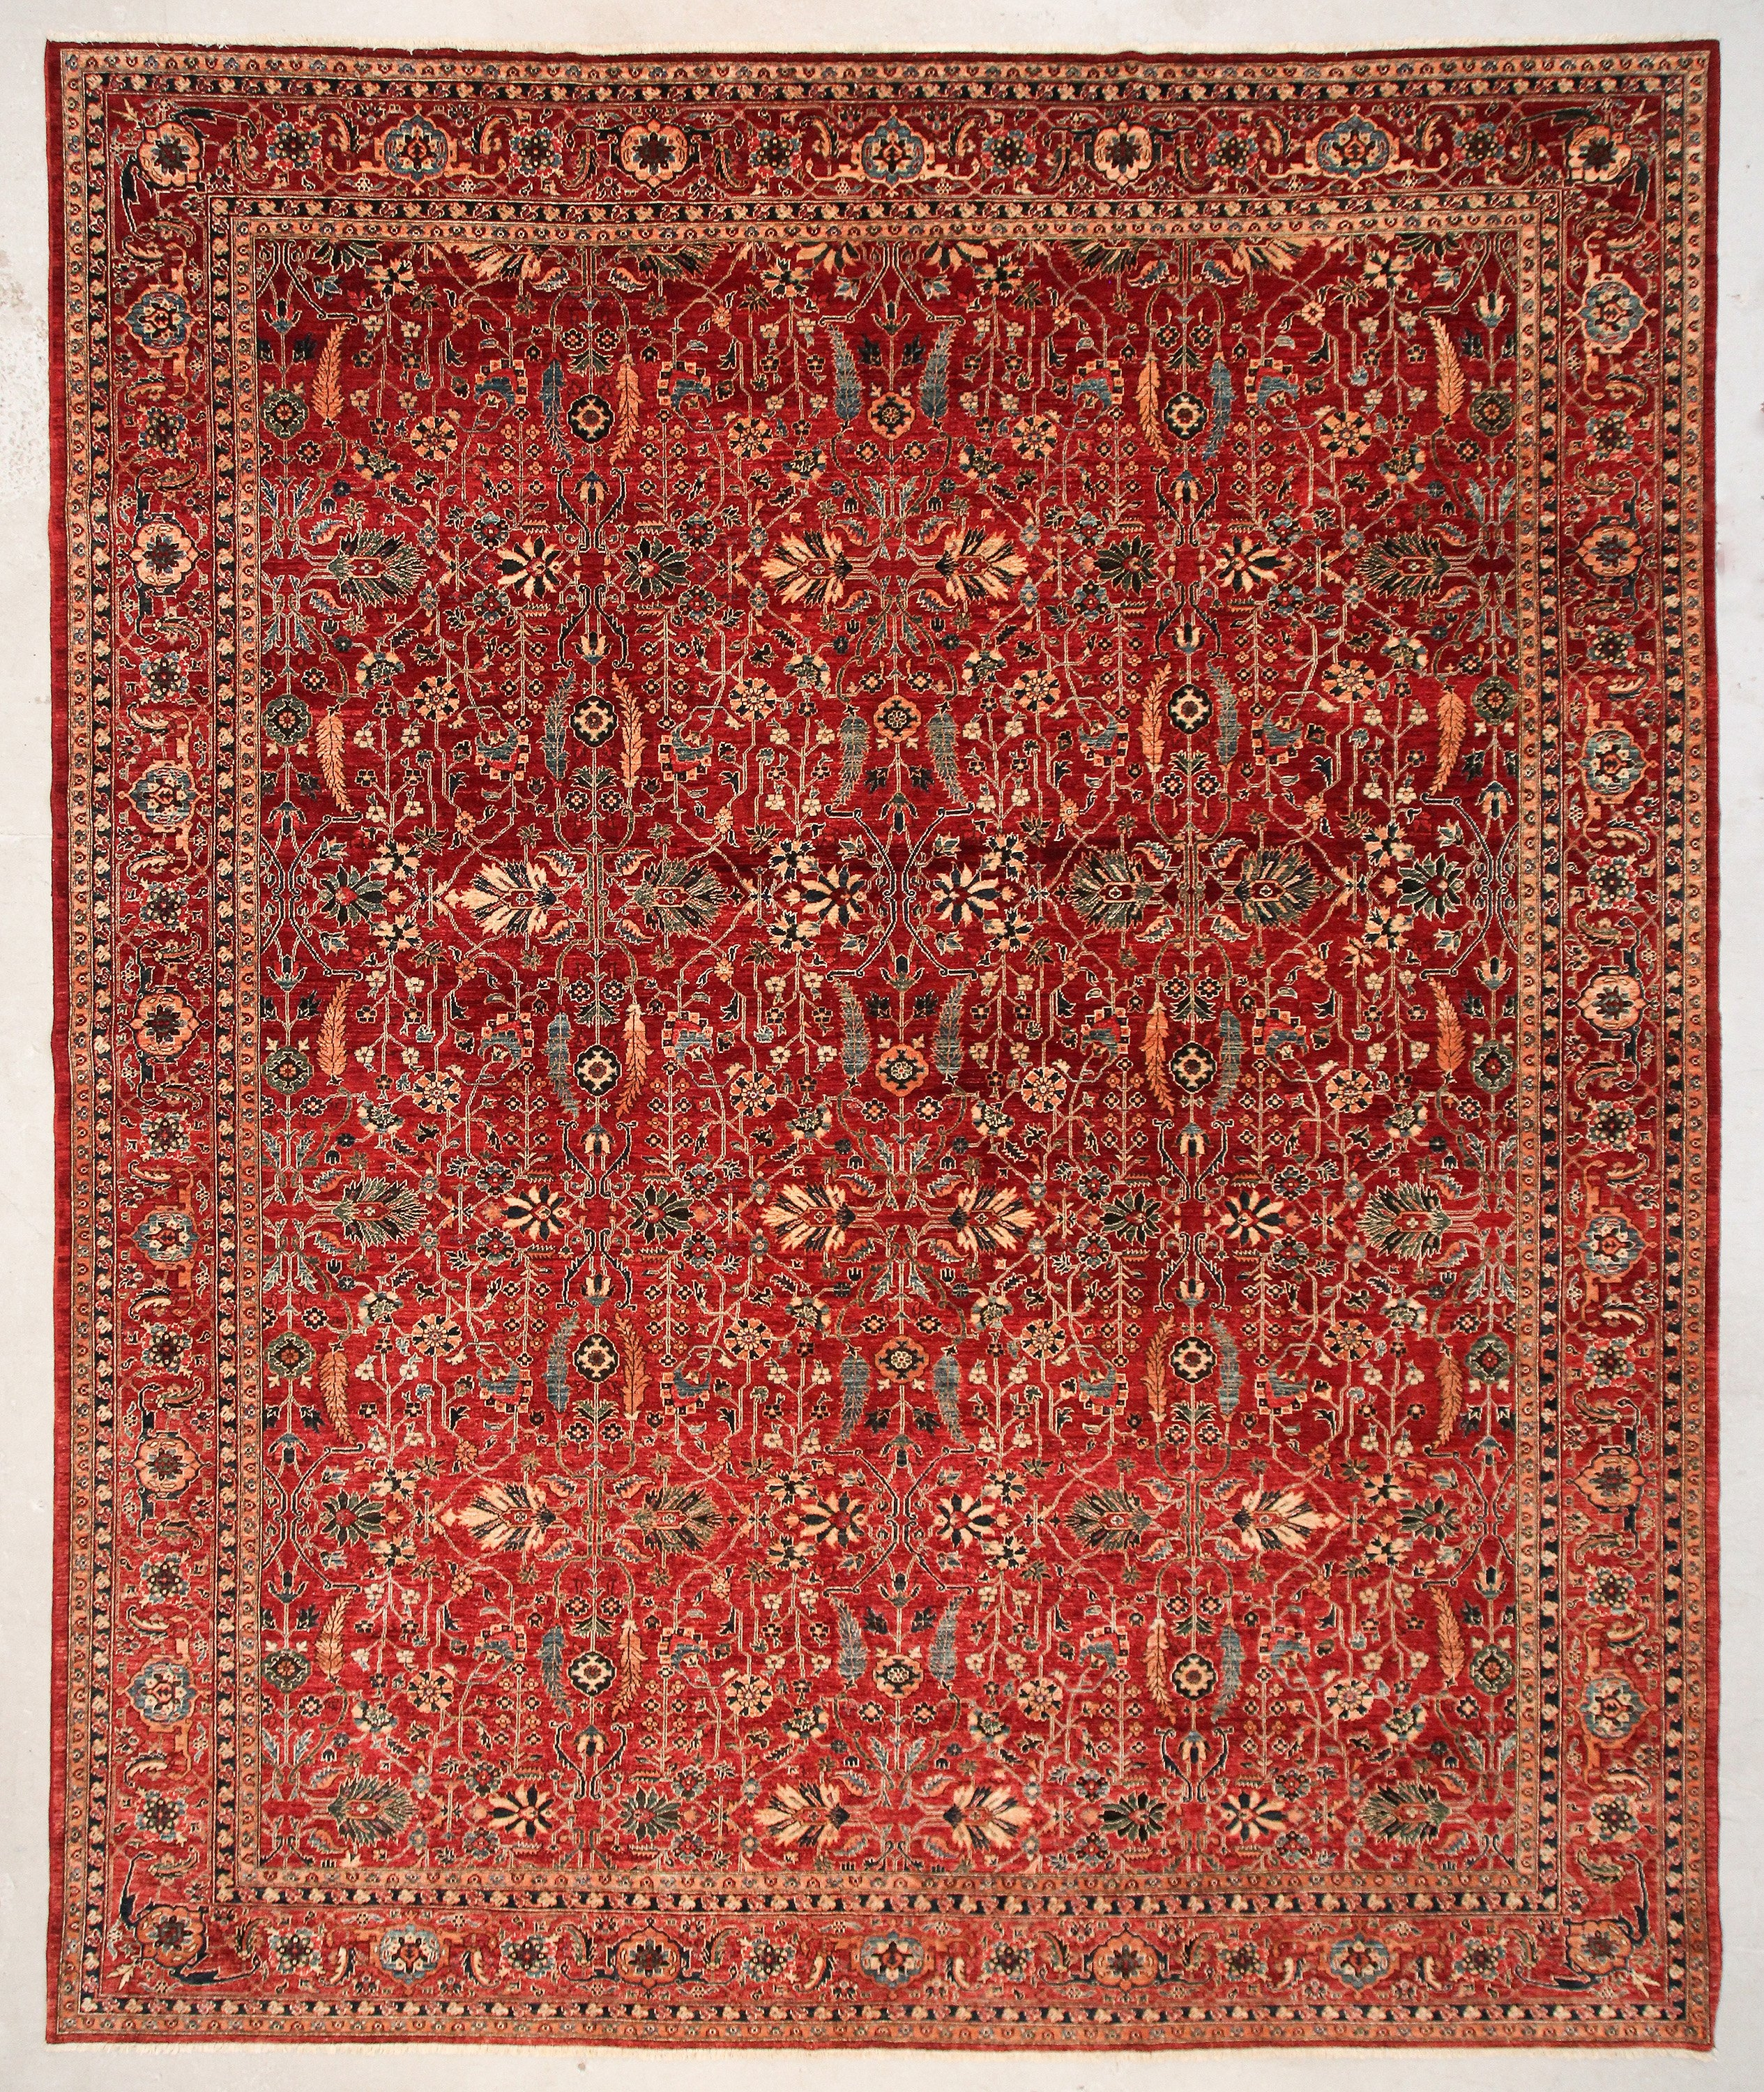 11 X 14 Rug Inspiration On Lowes Area Rugs Hearth Rugs Rug Ideas Regarding Hearth Rugs (Image 1 of 15)